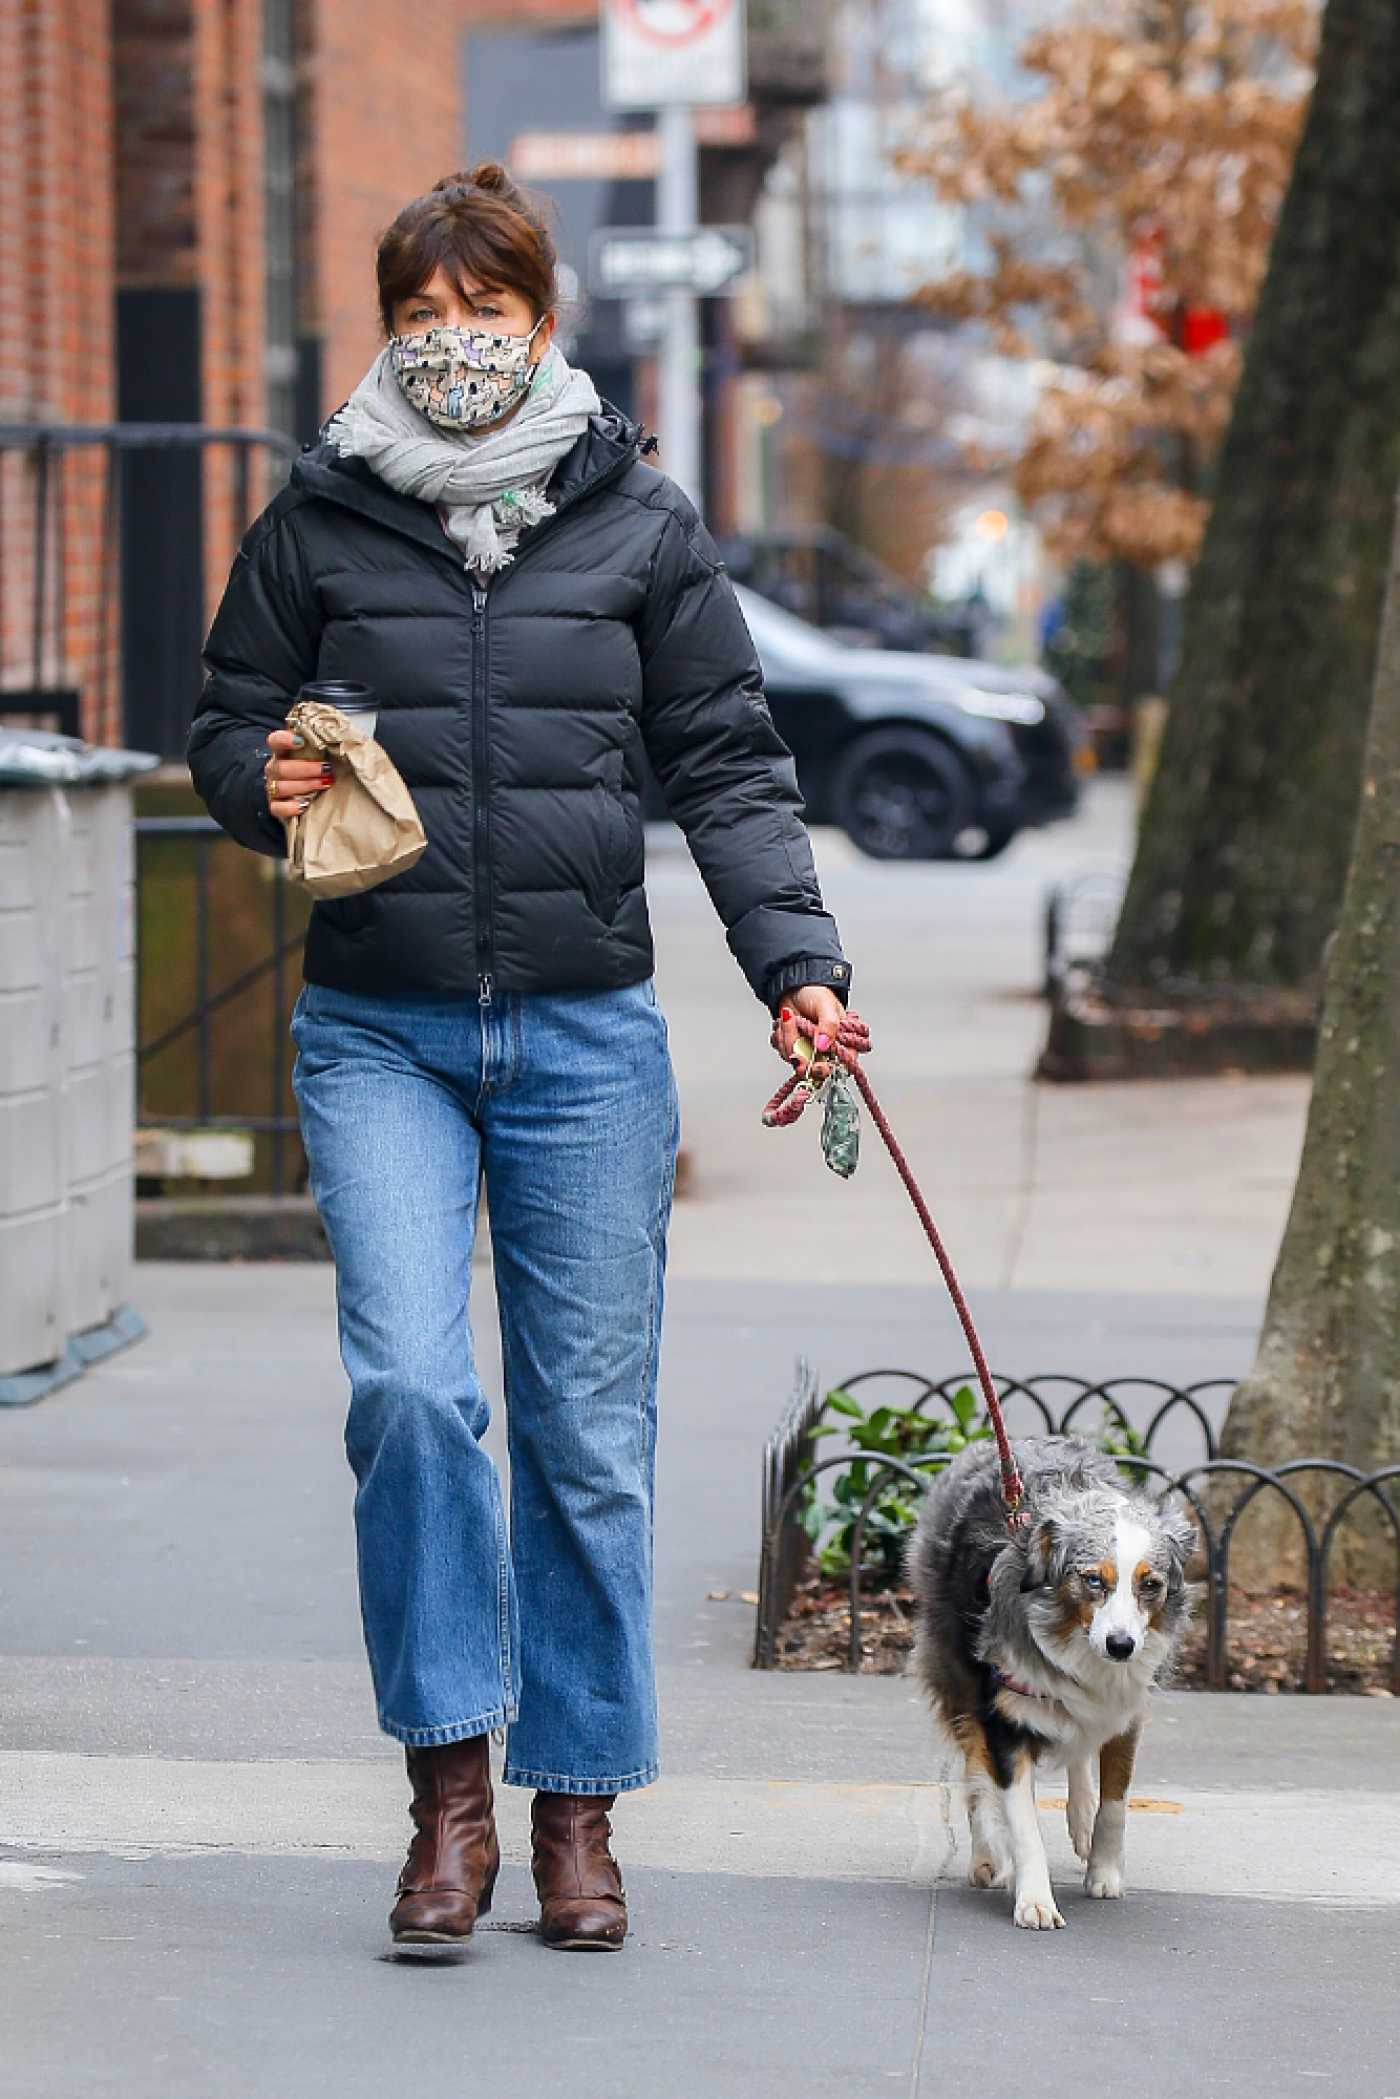 Helena Christensen in a Black Jacket Walks Her Dog in New York 01/11/2021